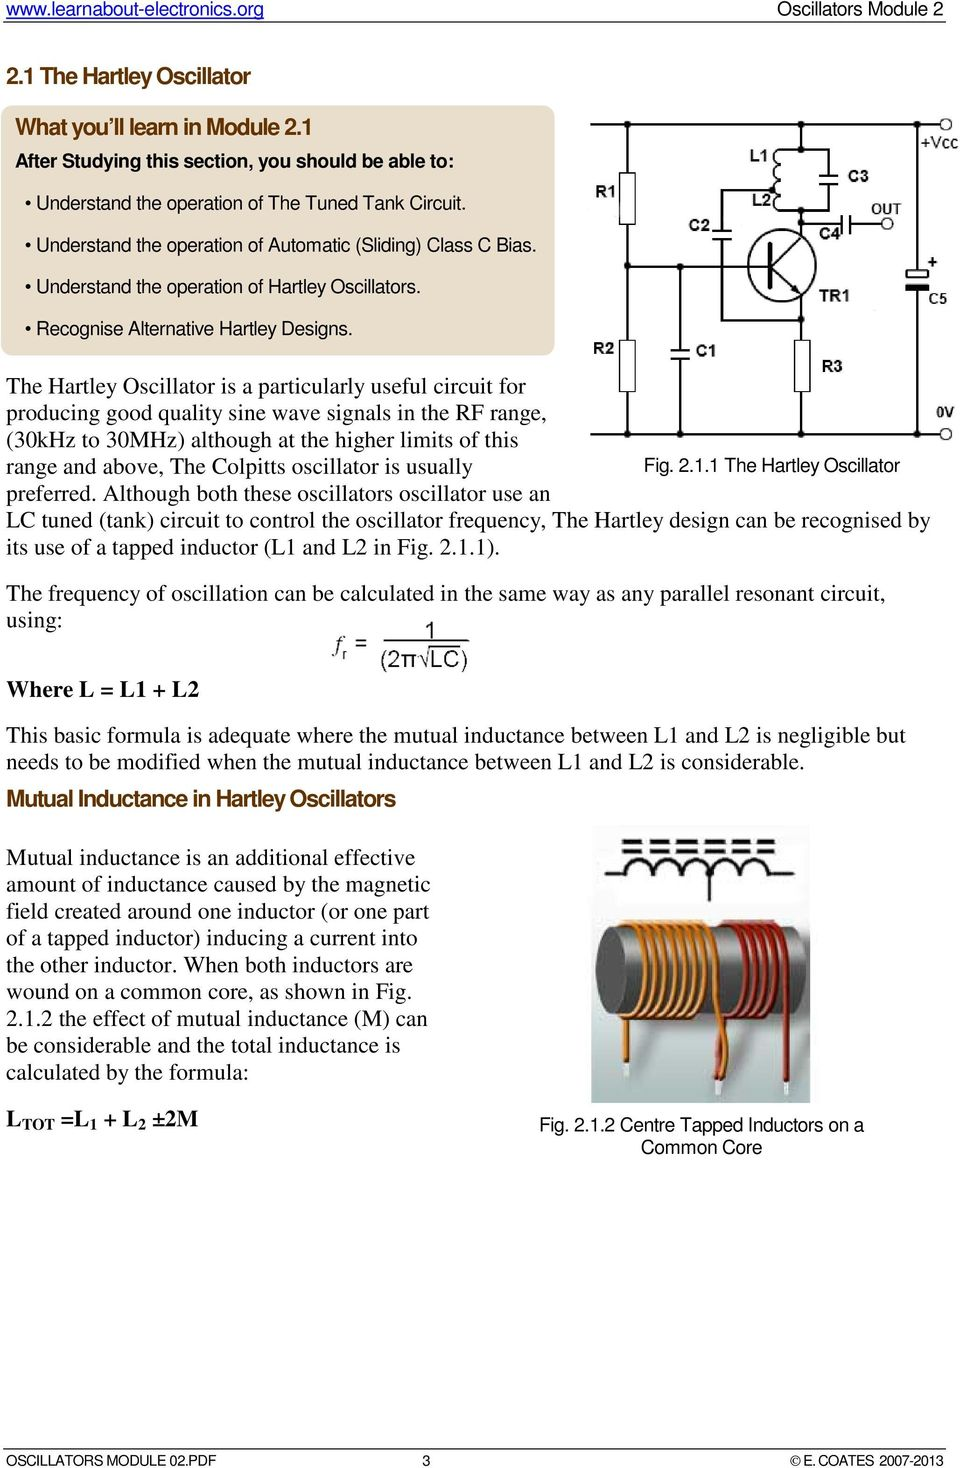 The Hartley Oscillator is a particularly useful circuit for producing good quality sine wave signals in the RF range, (30kHz to 30MHz) although at the higher limits of this range and above, The